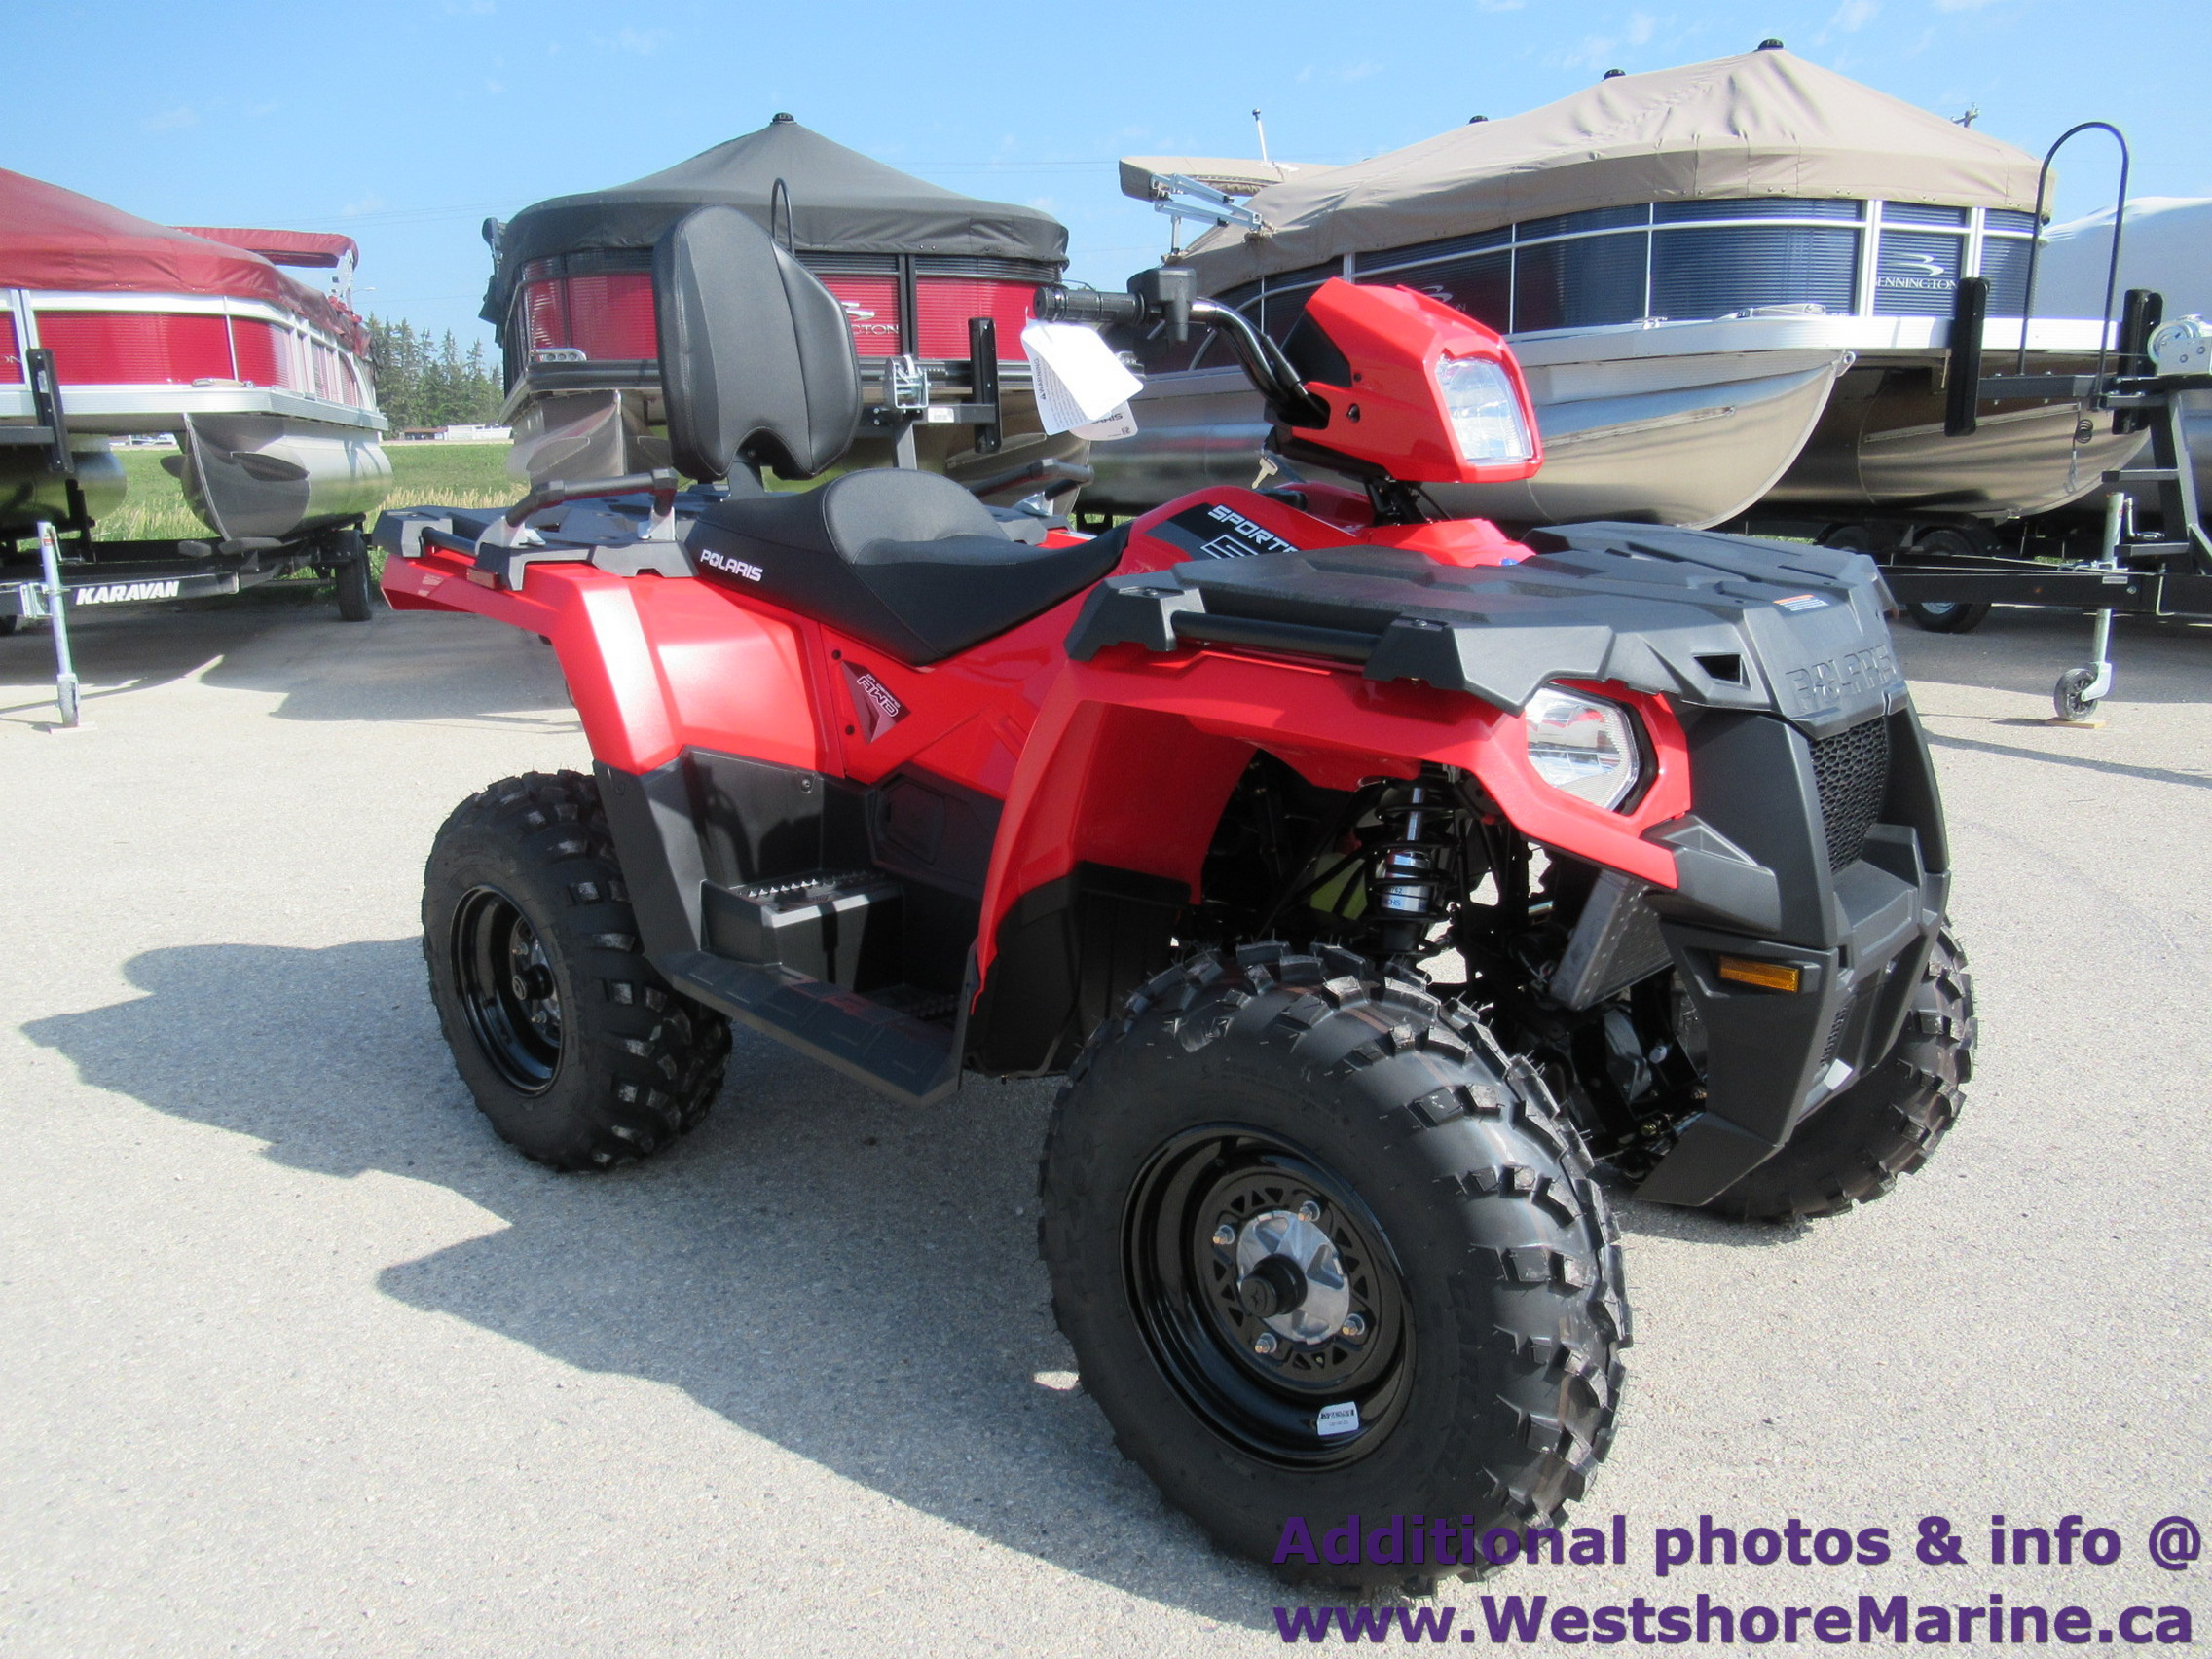 New 2019 Polaris 570 SPORTSMAN TOURING 2 SEAT ATV